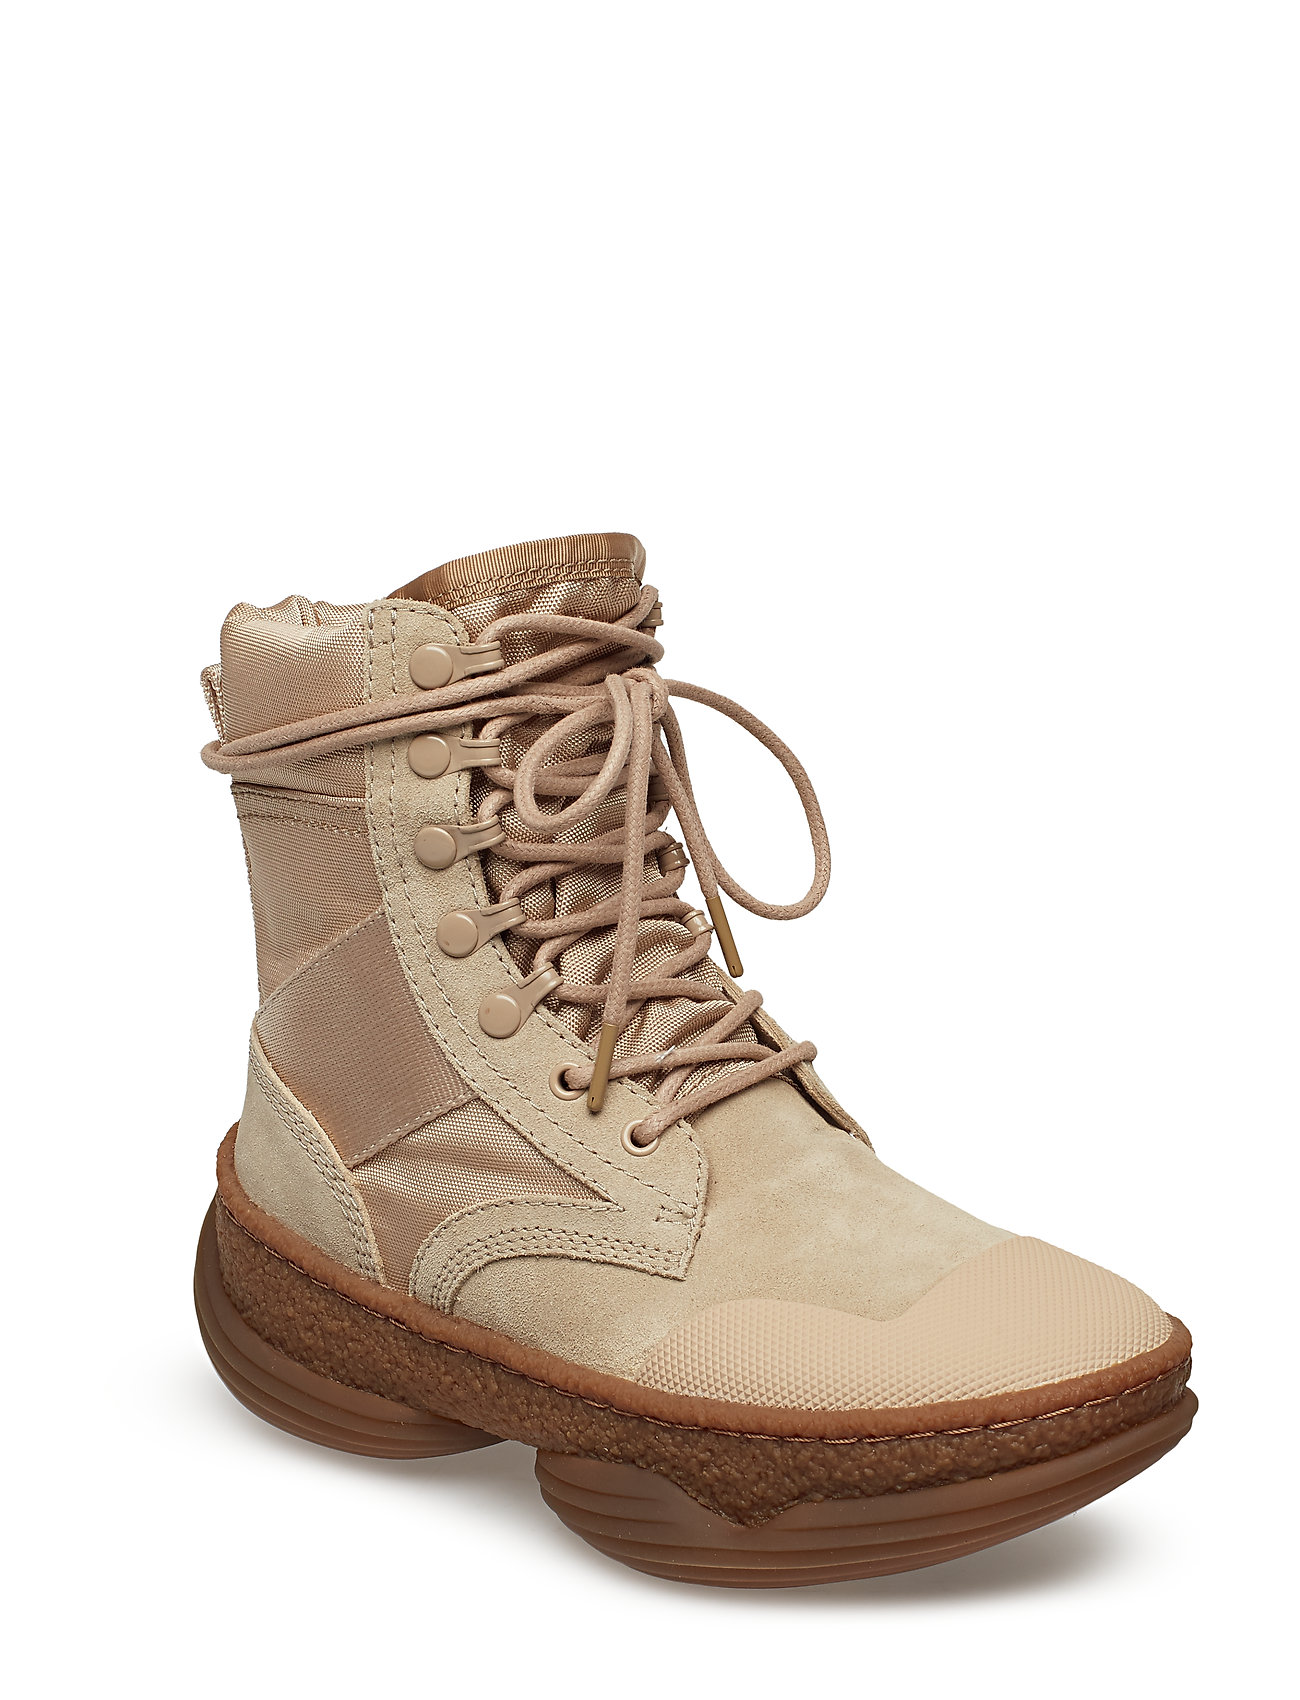 Image of A1 Combat Boot Sand Suede/Canvas Shoes Boots Ankle Boots Ankle Boot - Flat Brun Alexander Wang (3455949745)